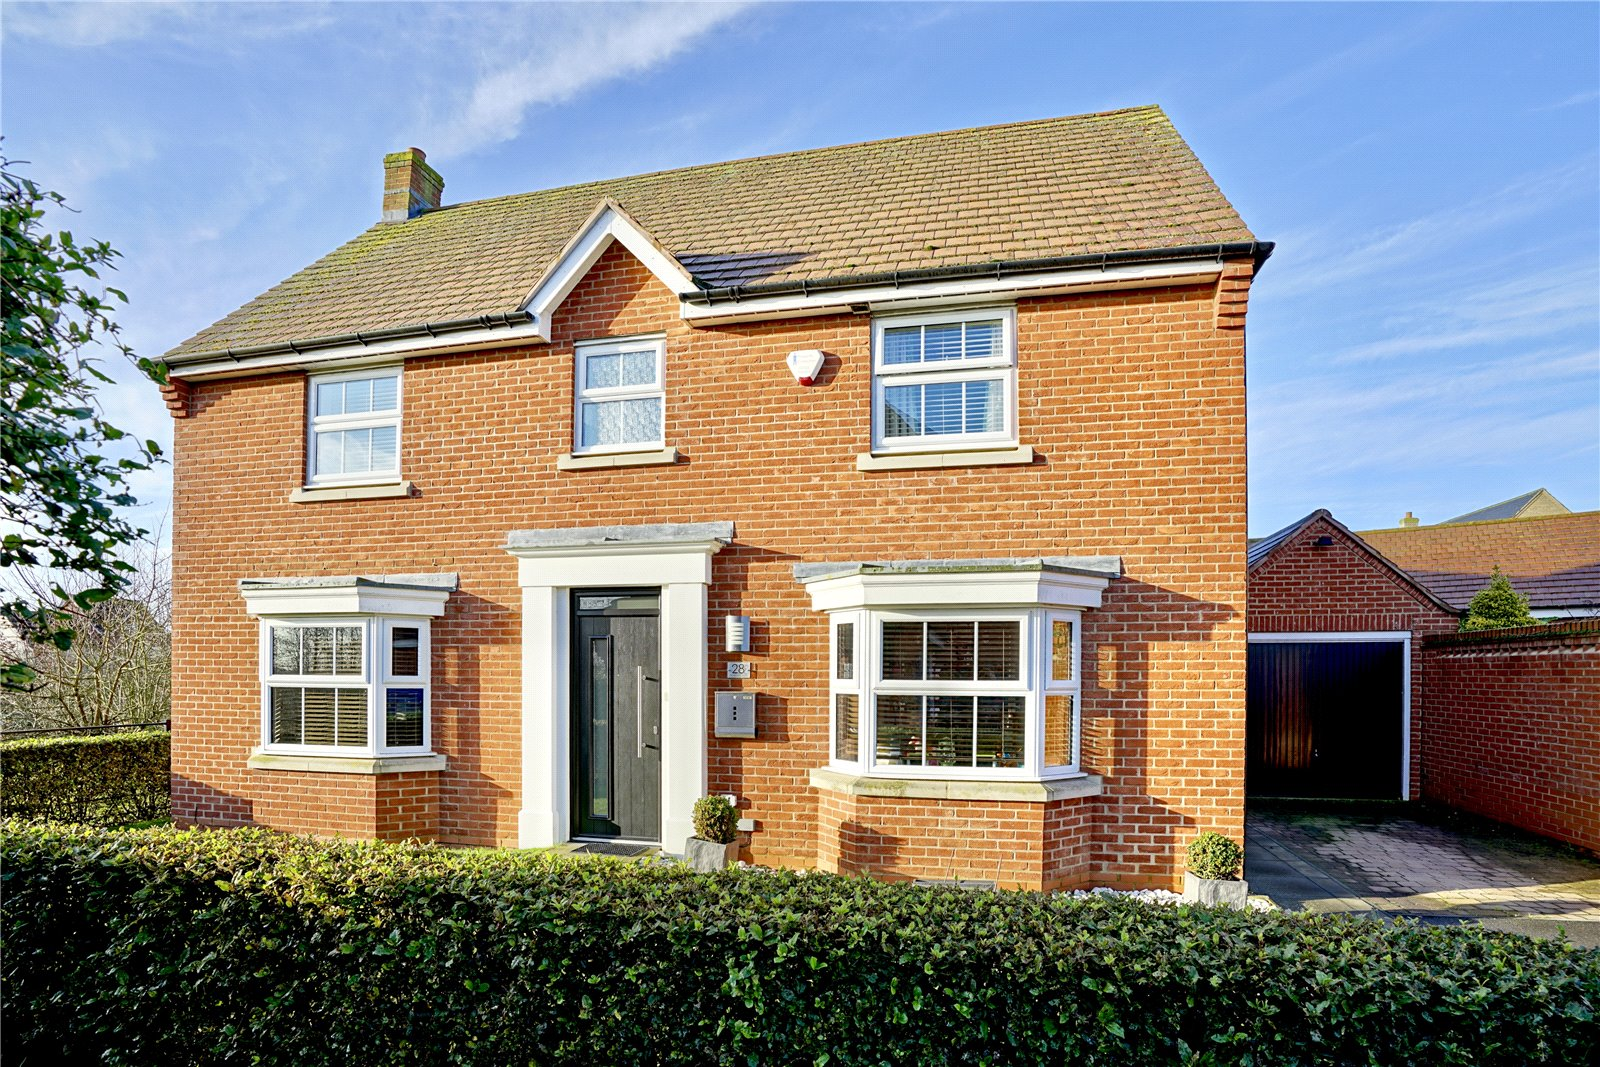 4 bed house for sale in Lannesbury Crescent, St. Neots - Property Image 1